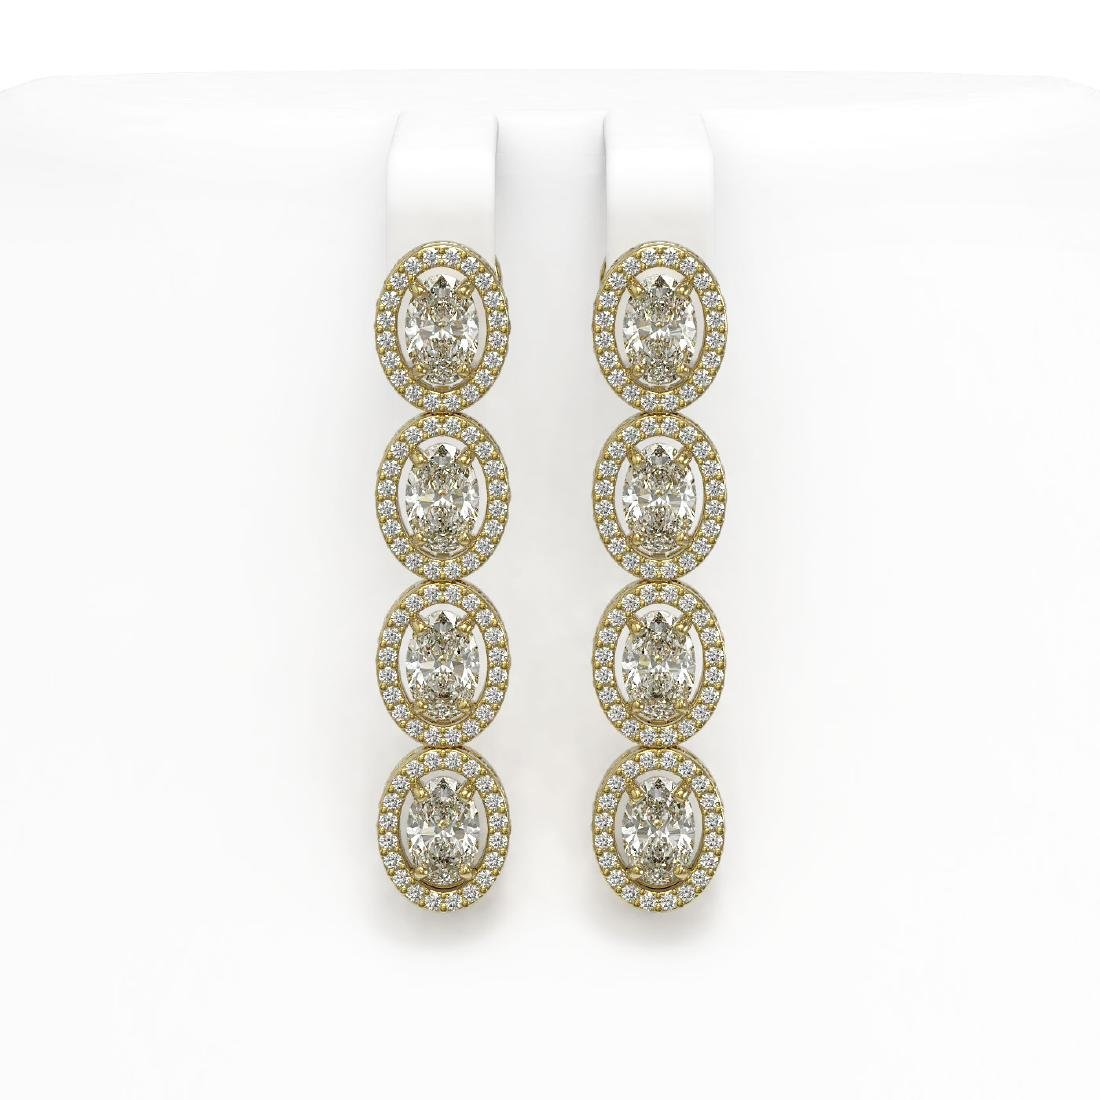 6.08 CTW Oval Diamond Designer Earrings 18K Yellow Gold